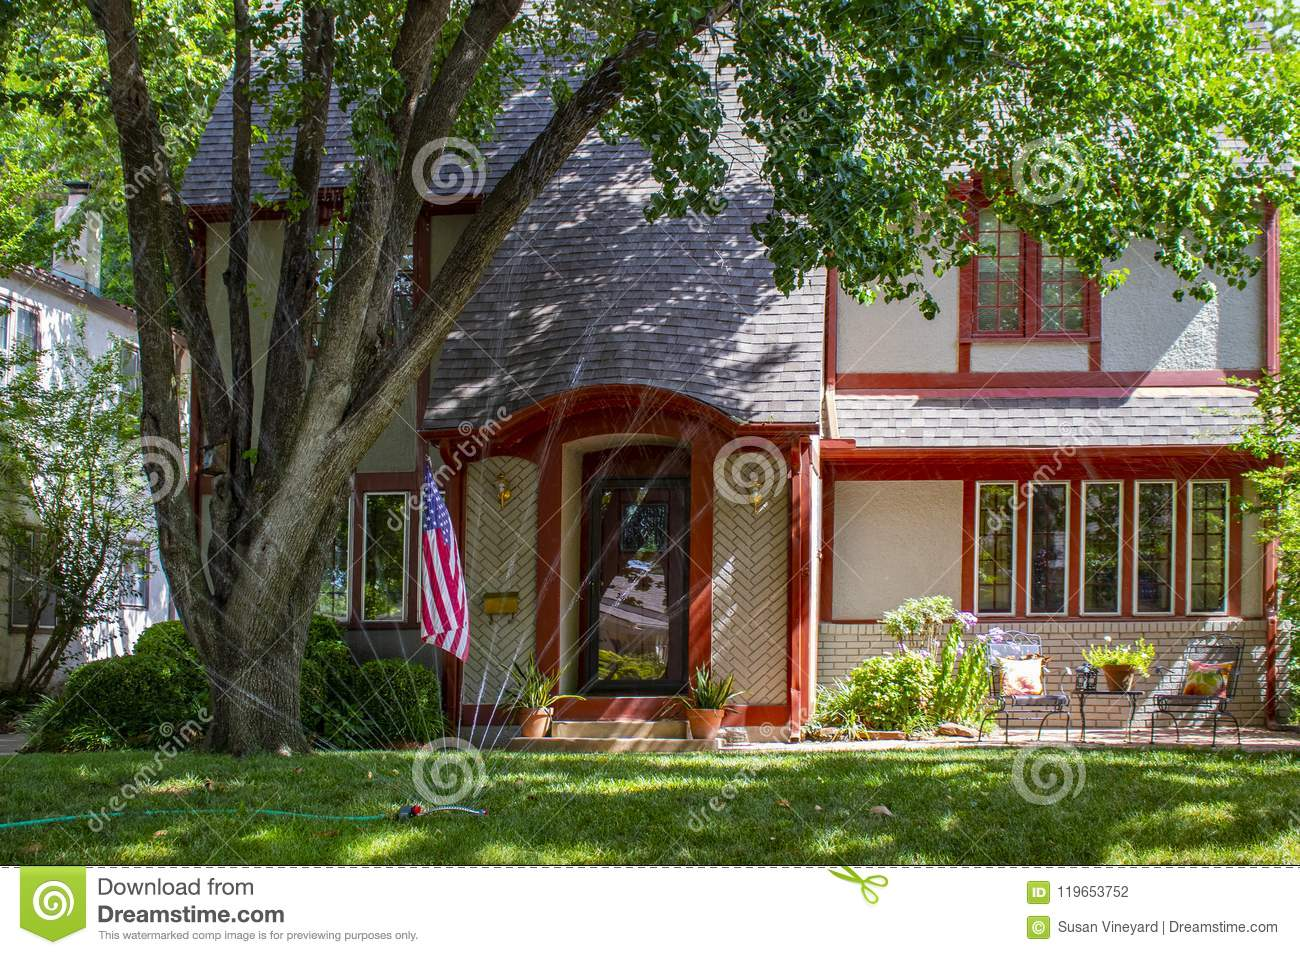 A Pretty brick house trimmed in red with patio and flowers and big trees displaying American flag with watering sprinklers on grass lawn & Pretty Brick House Trimmed In Red With Patio And Flowers And Big ...